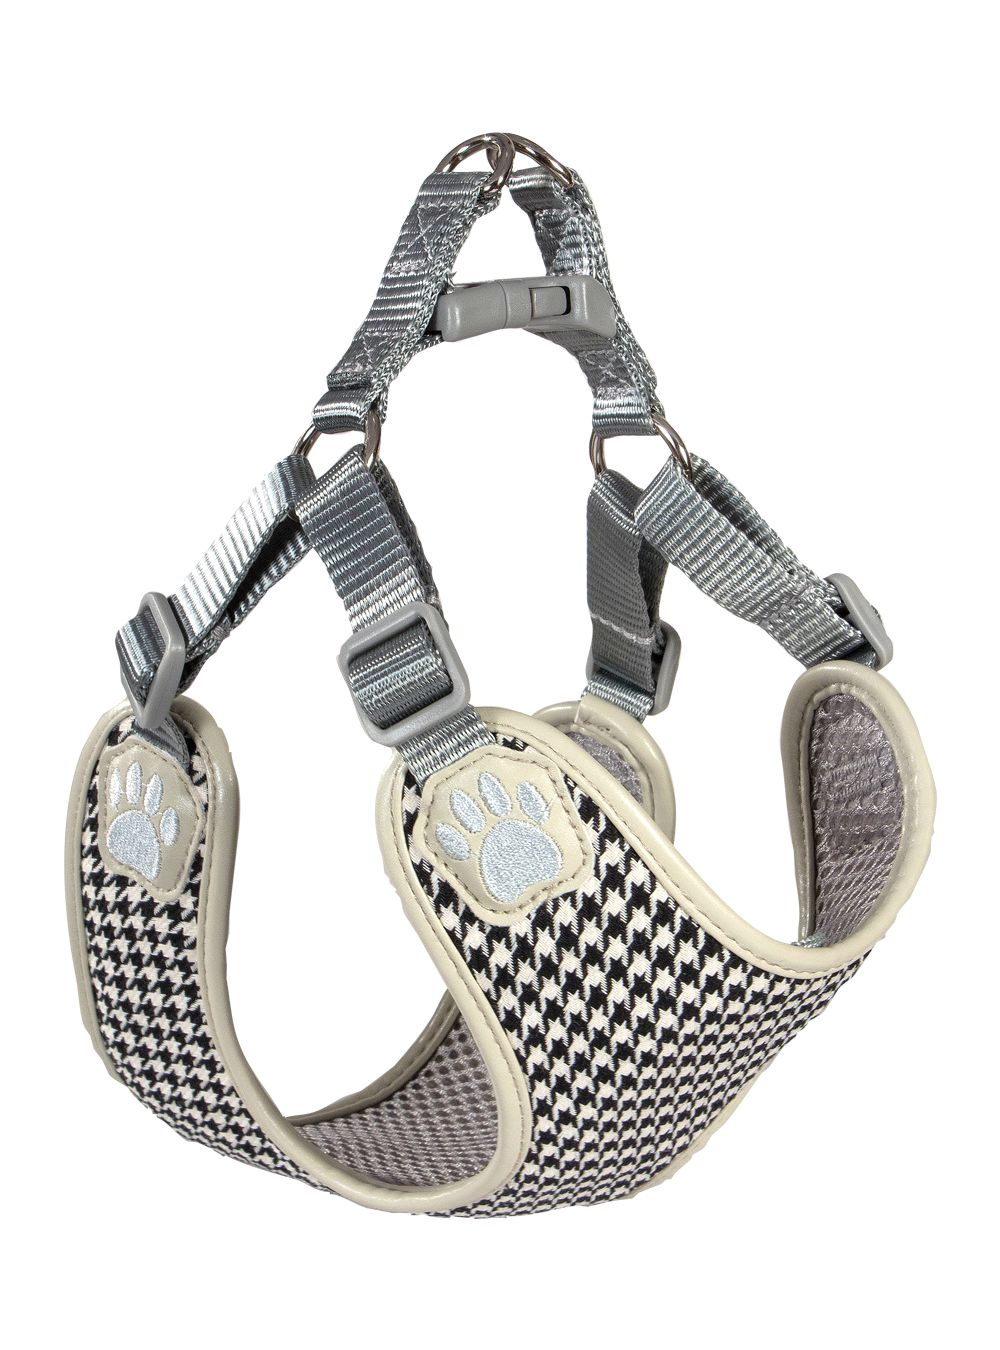 Pretty Paw London Buckingham Dog Harness